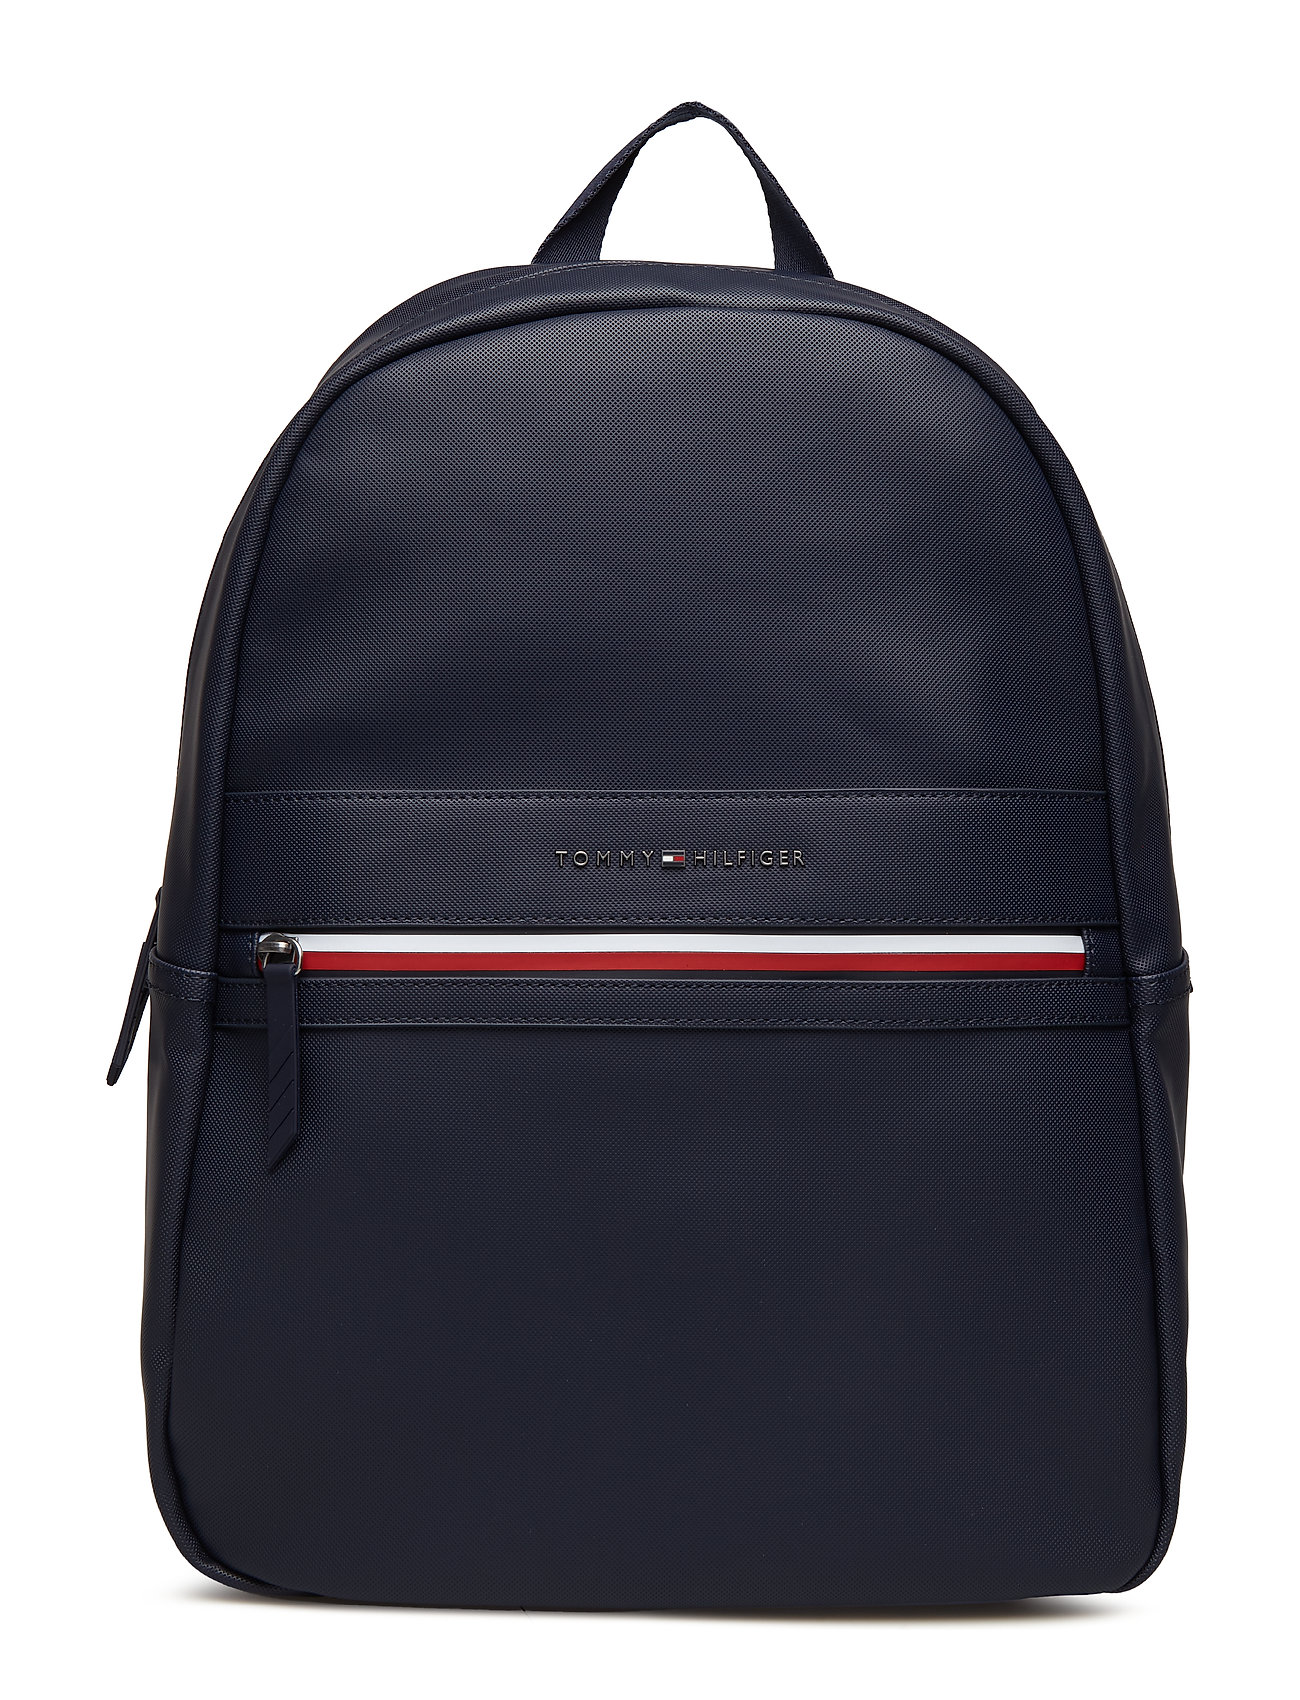 Tommy Hilfiger ESSENTIAL BACKPACK PIQUE